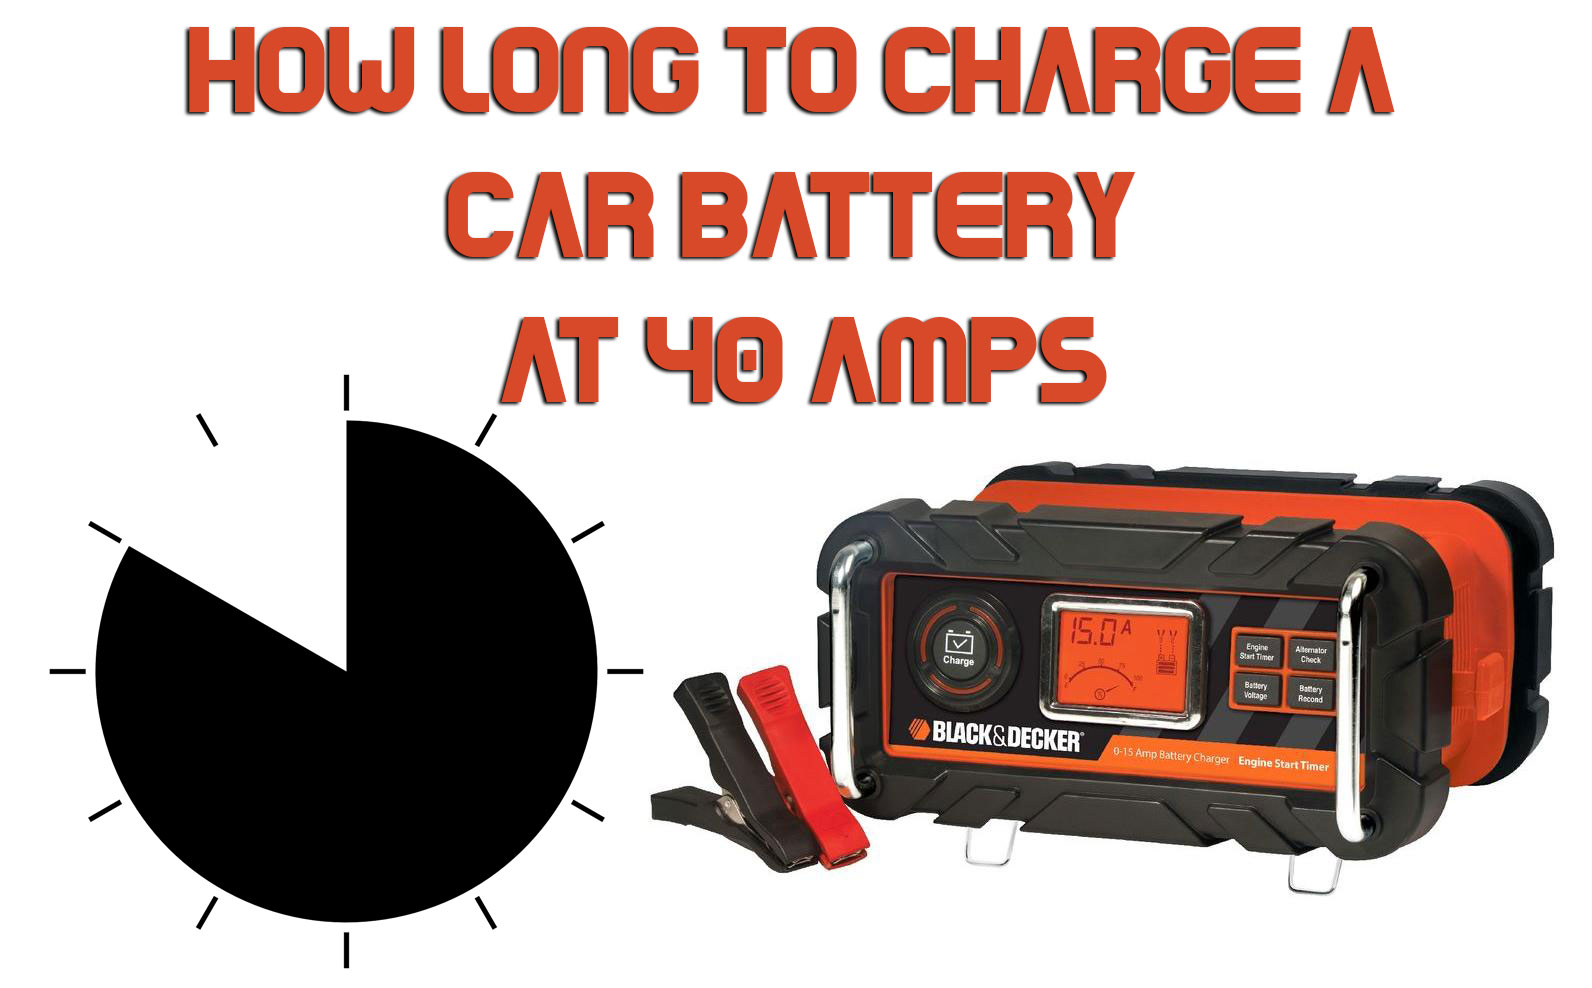 How To Charge A Car Battery Without A Charger >> How Long To Charge A Car Battery At 40 Amps Ruf Car